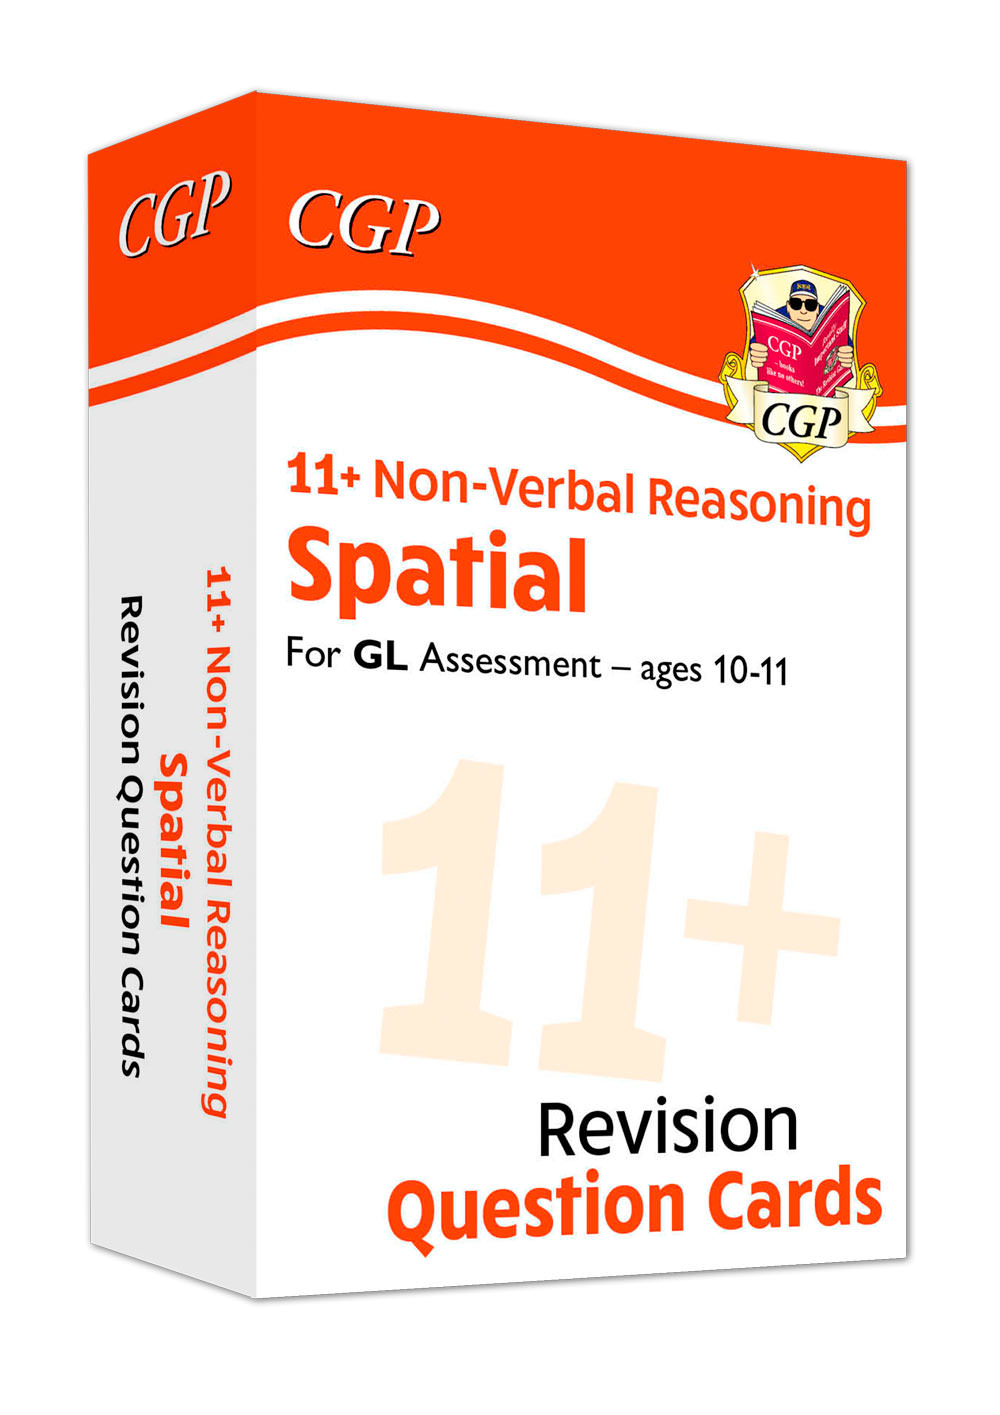 NDFE1 - New 11+ GL Revision Question Cards: Non-Verbal Reasoning Spatial - Ages 10-11